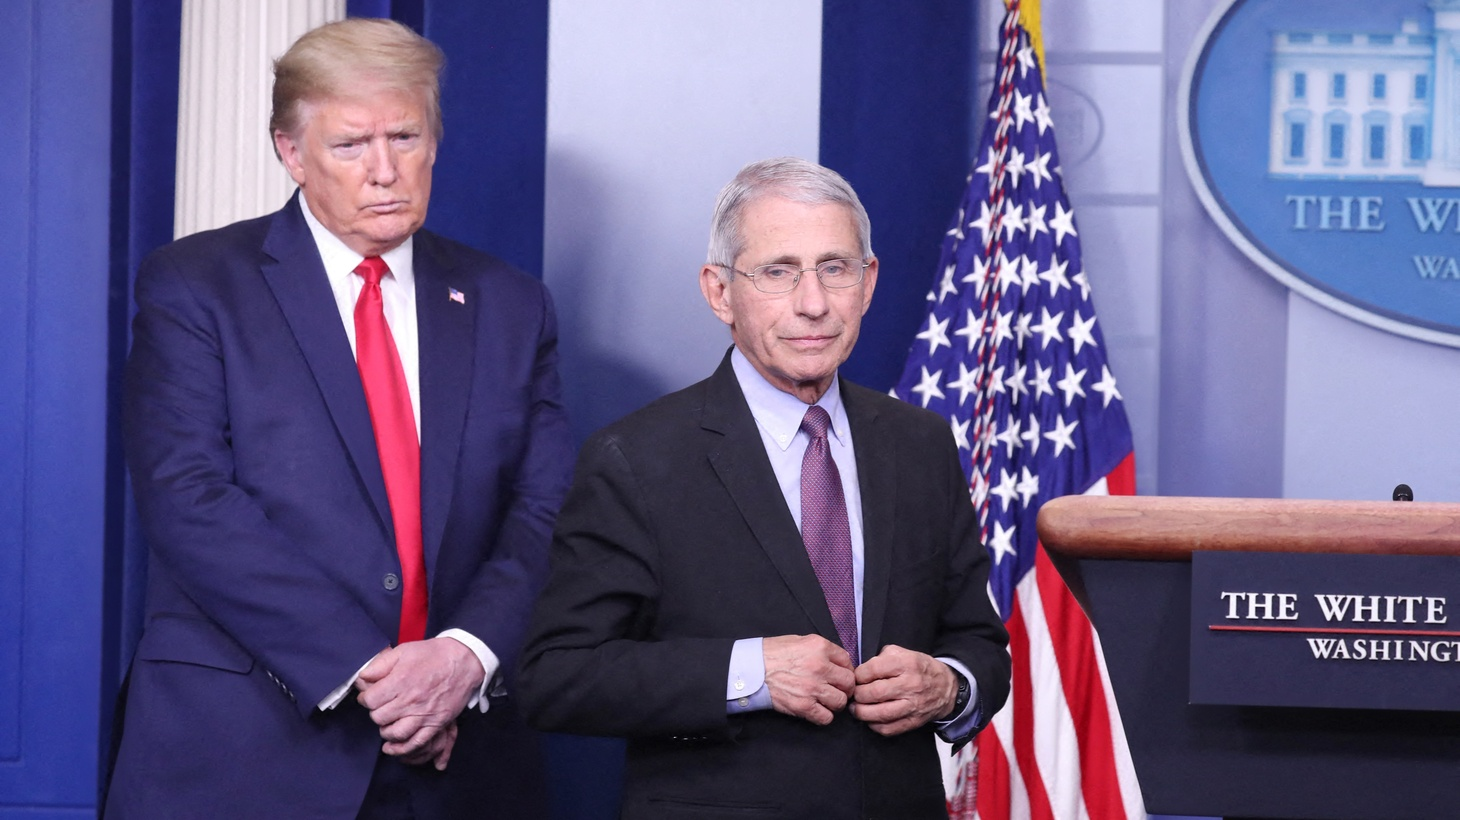 U.S. President Donald J. Trump and Dr. Anthony Fauci deliver remarks on the COVID-19 pandemic at the White House in Washington, DC, USA, April 22, 2020.